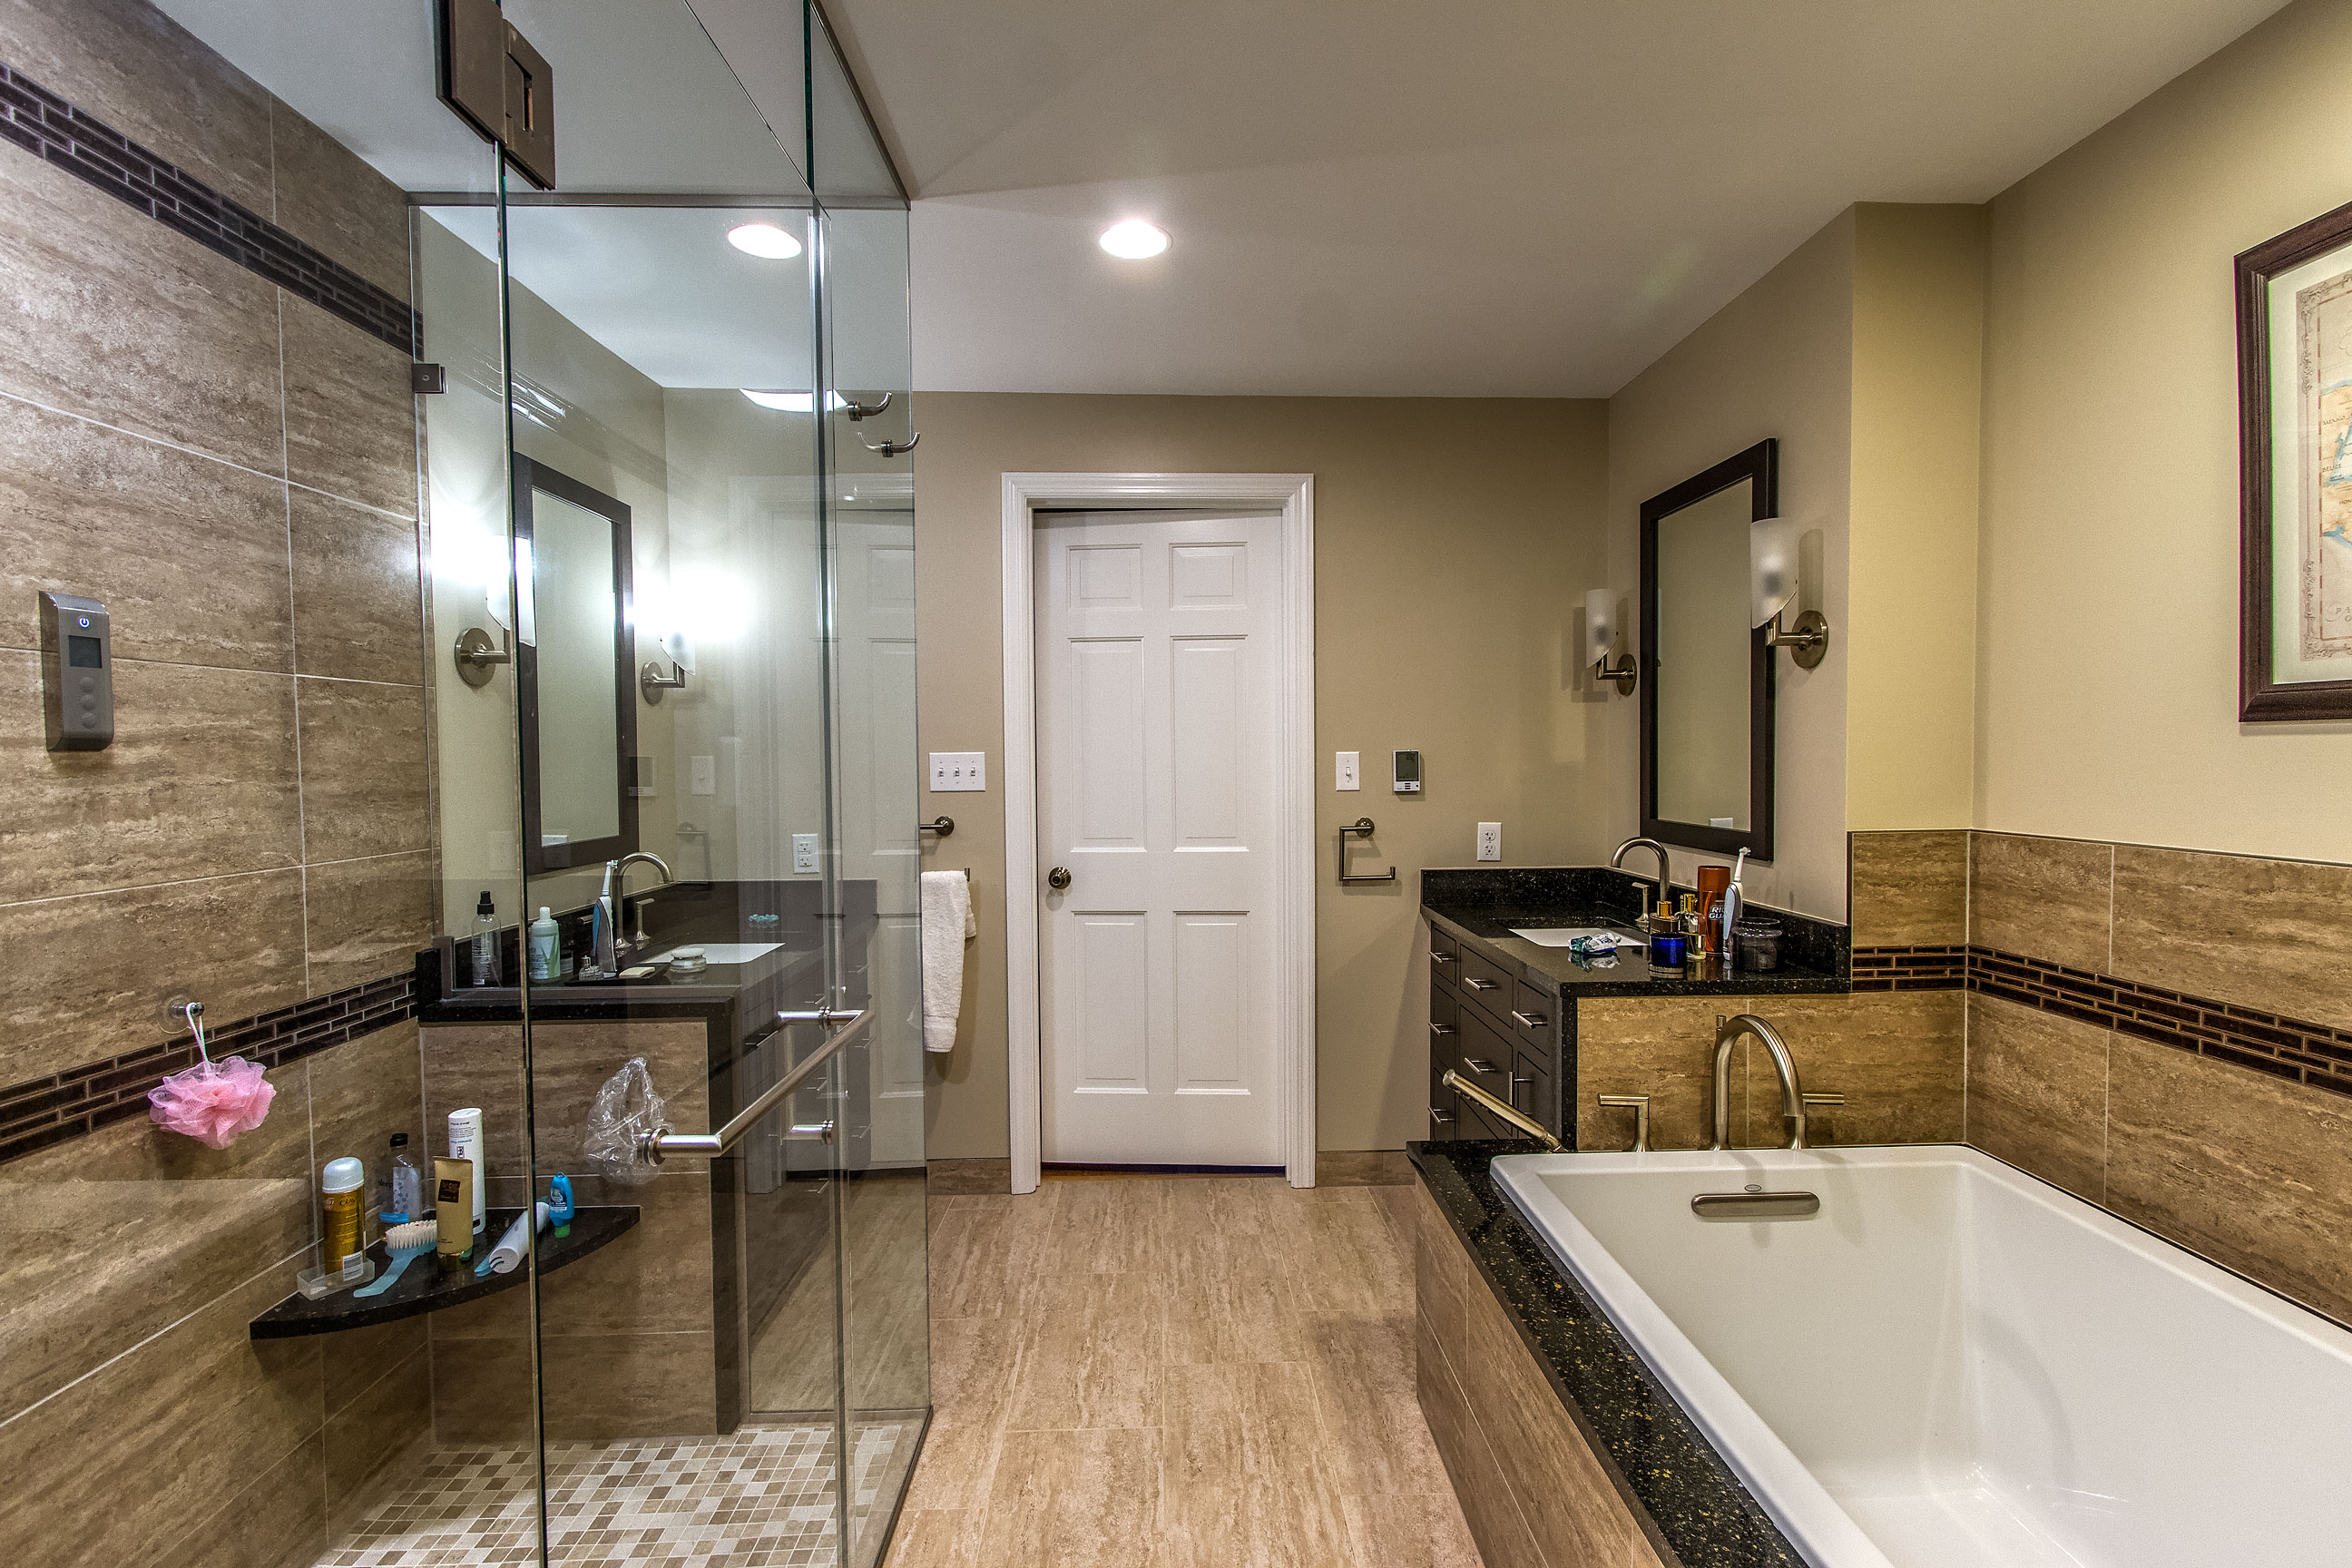 Bathroom Remodeling Pittsburgh Pittsburgh Remodeling Company Bathroom Renovations  Pittsburgh .